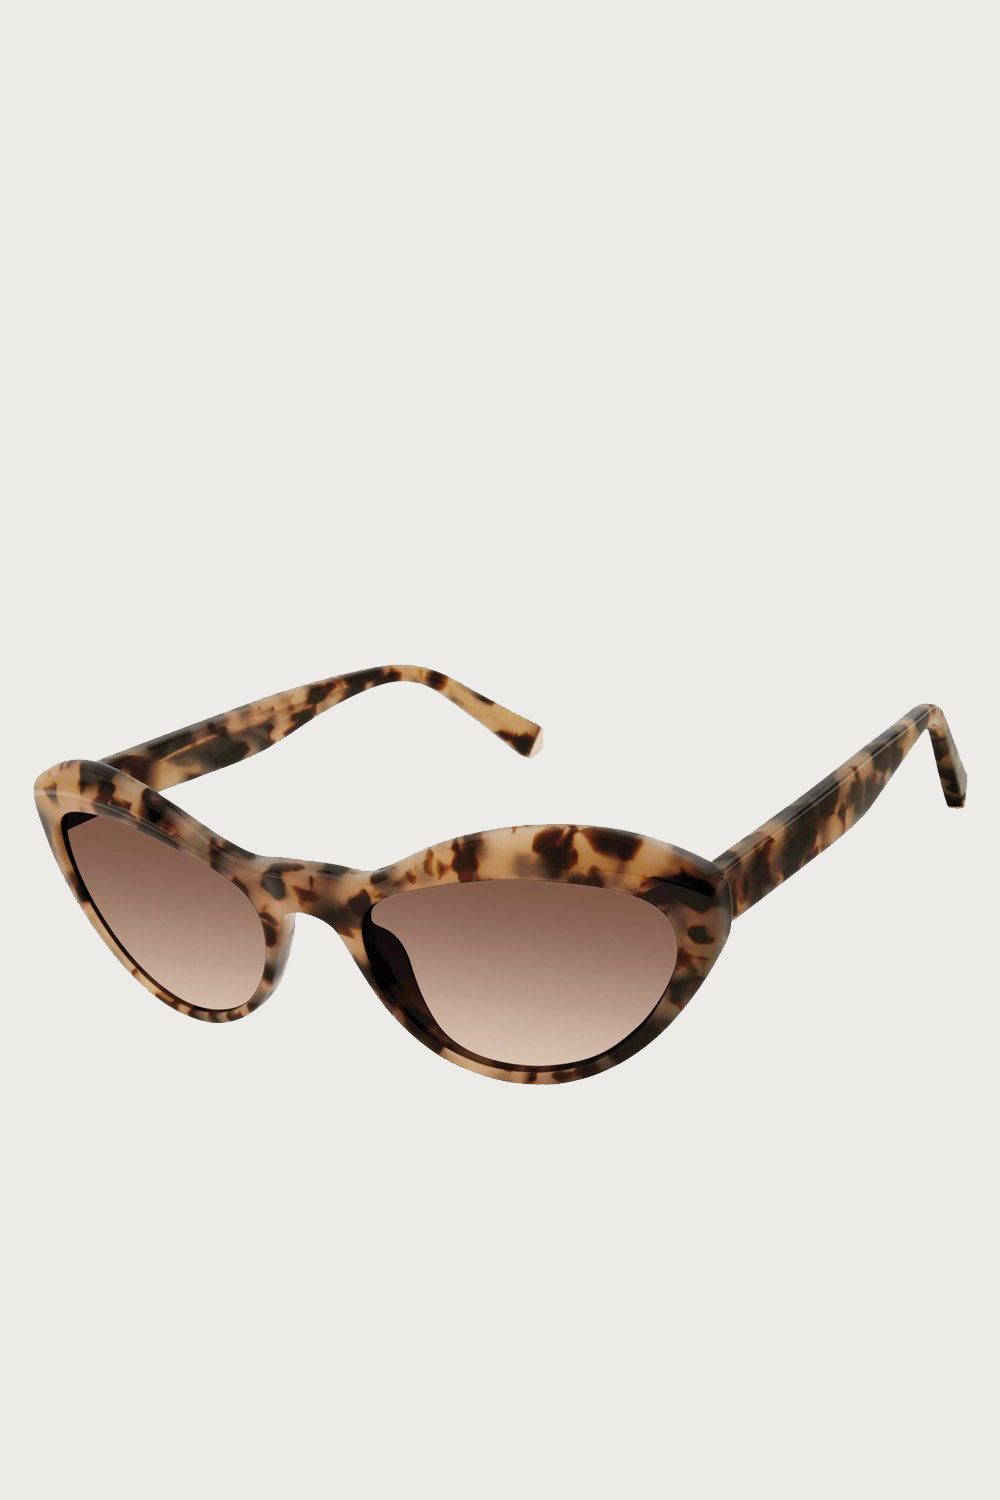 Elene Sunglasses in Tortoise